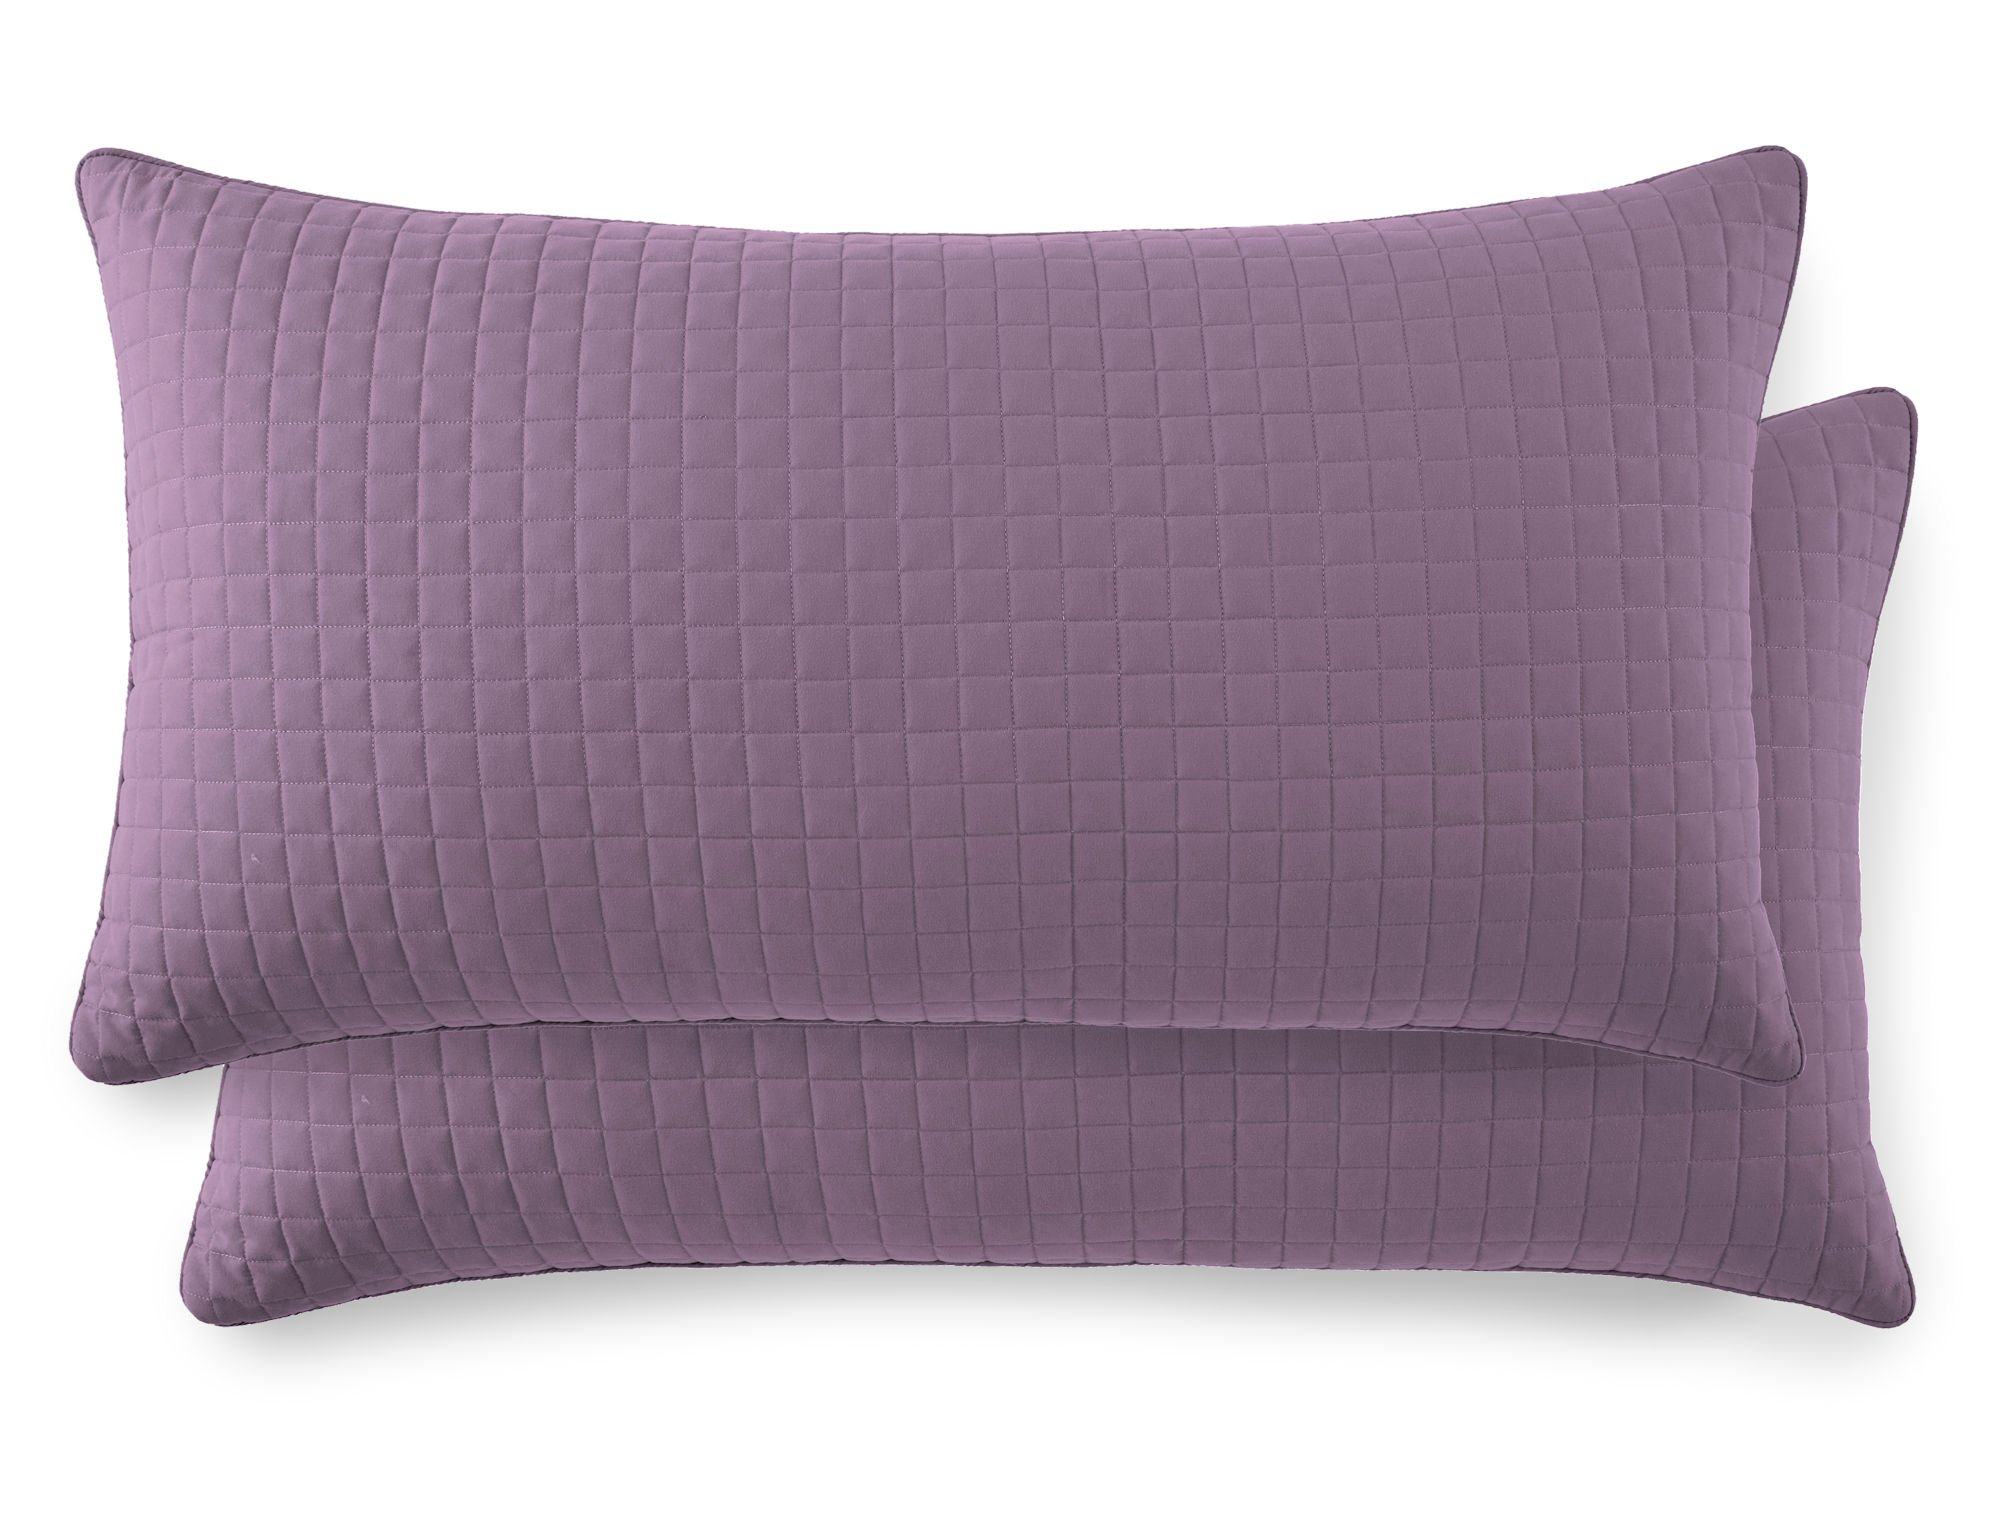 Southshore Fine Linens - VILANO SPRINGS - Pair of Quilted Pillow Sham Covers (No Inserts), 20'' x 36'', Lavender